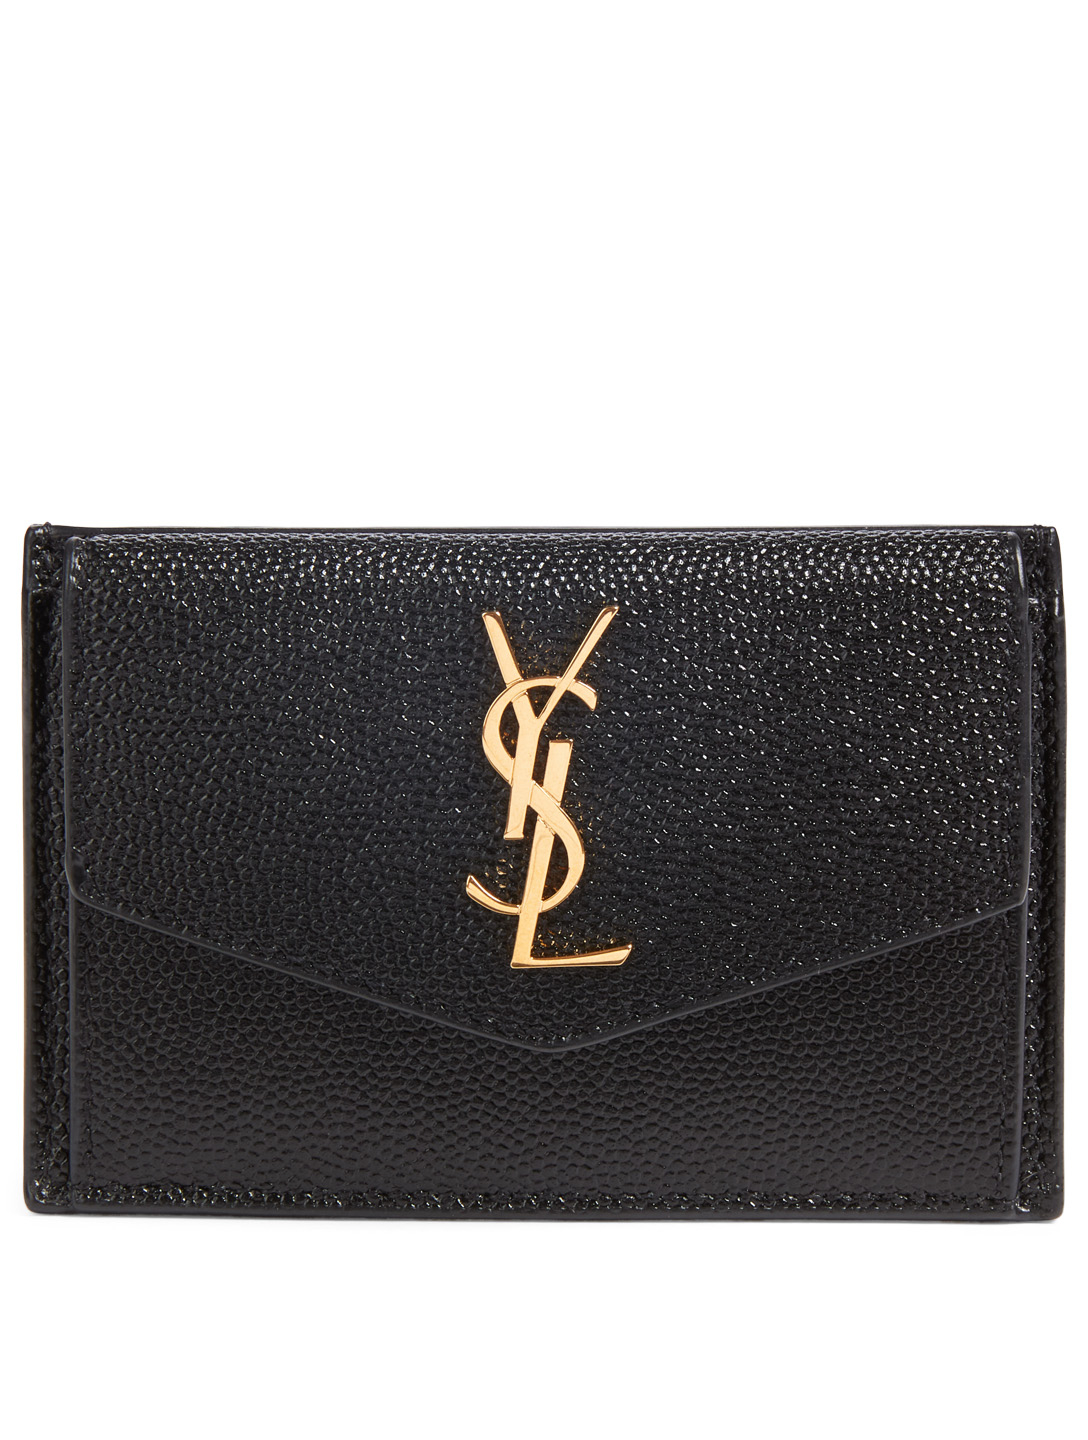 SAINT LAURENT Uptown YSL Monogram Leather Wallet Women's Black